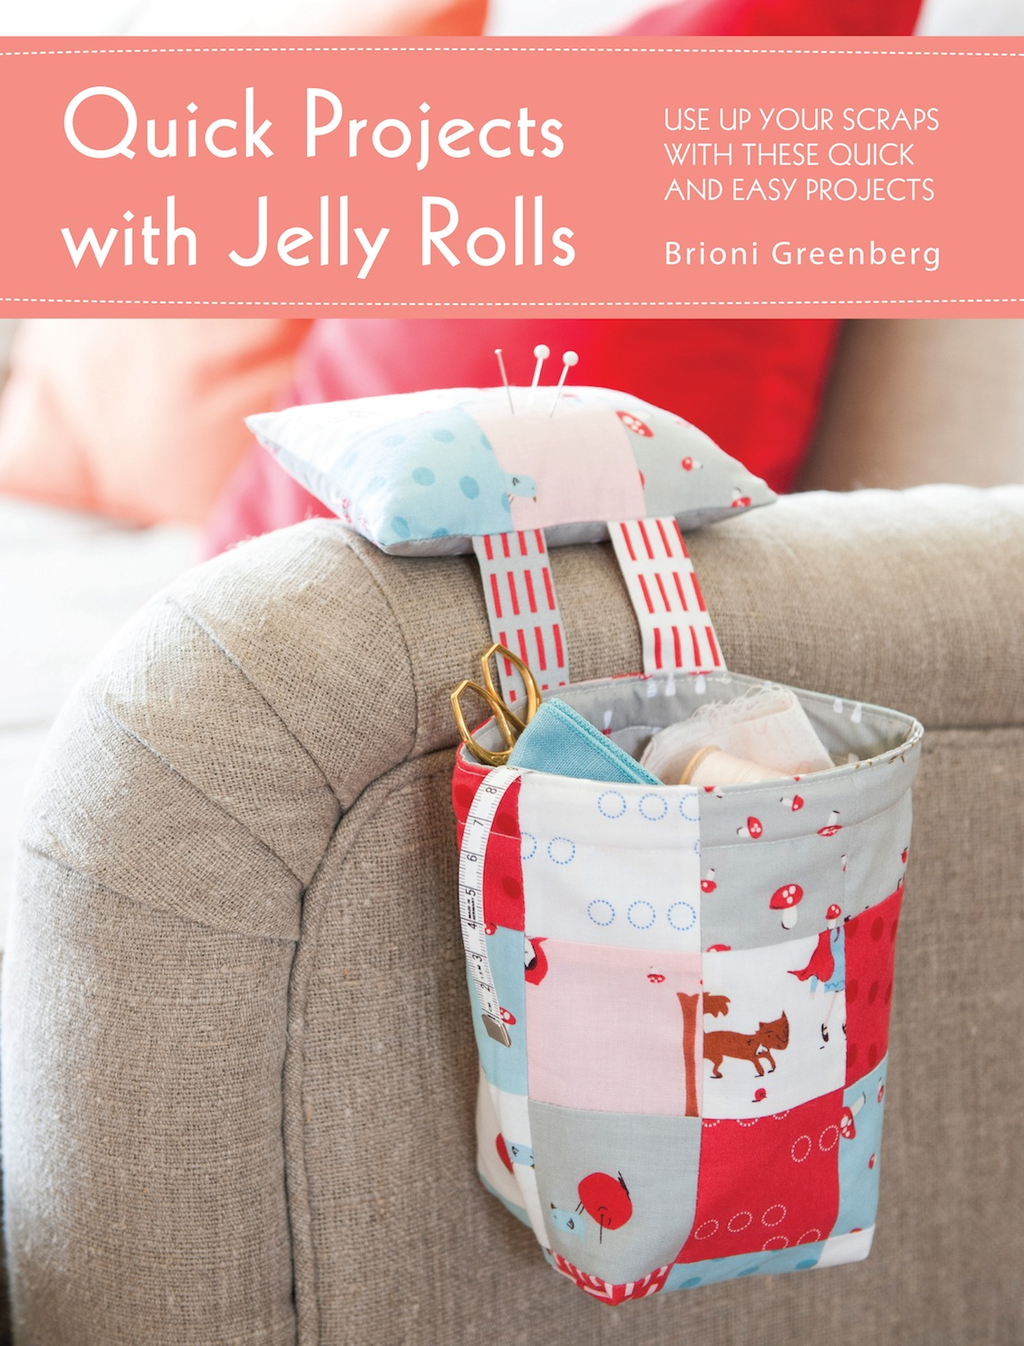 Quick Projects with Jelly Rolls Use Up Your Scraps with these Quick and Easy Projects